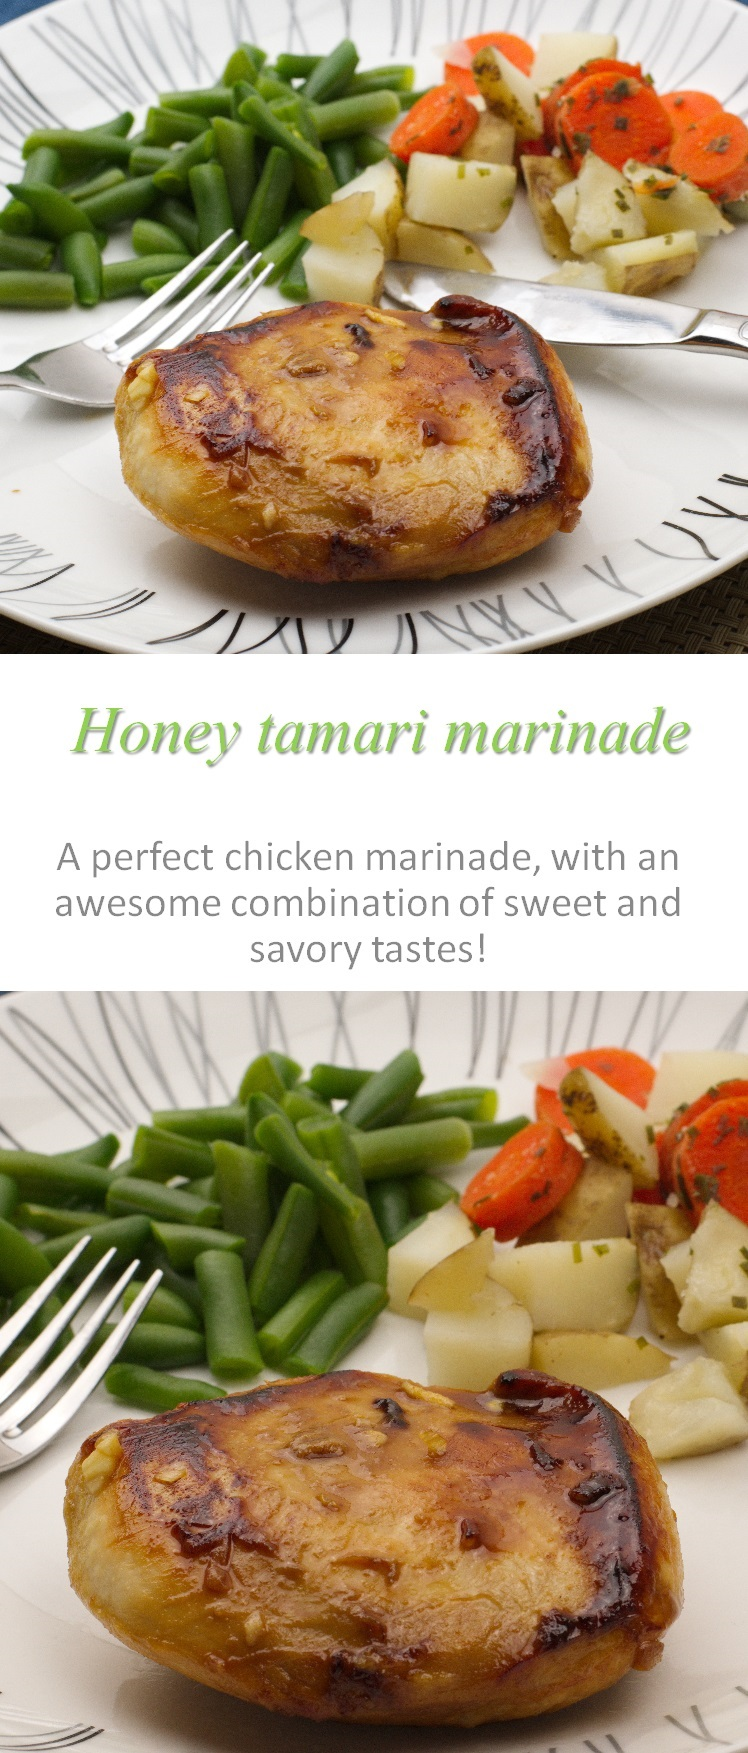 A yummy gluten free honey tamari marinade that is awesome for any type of chicken  #marinade